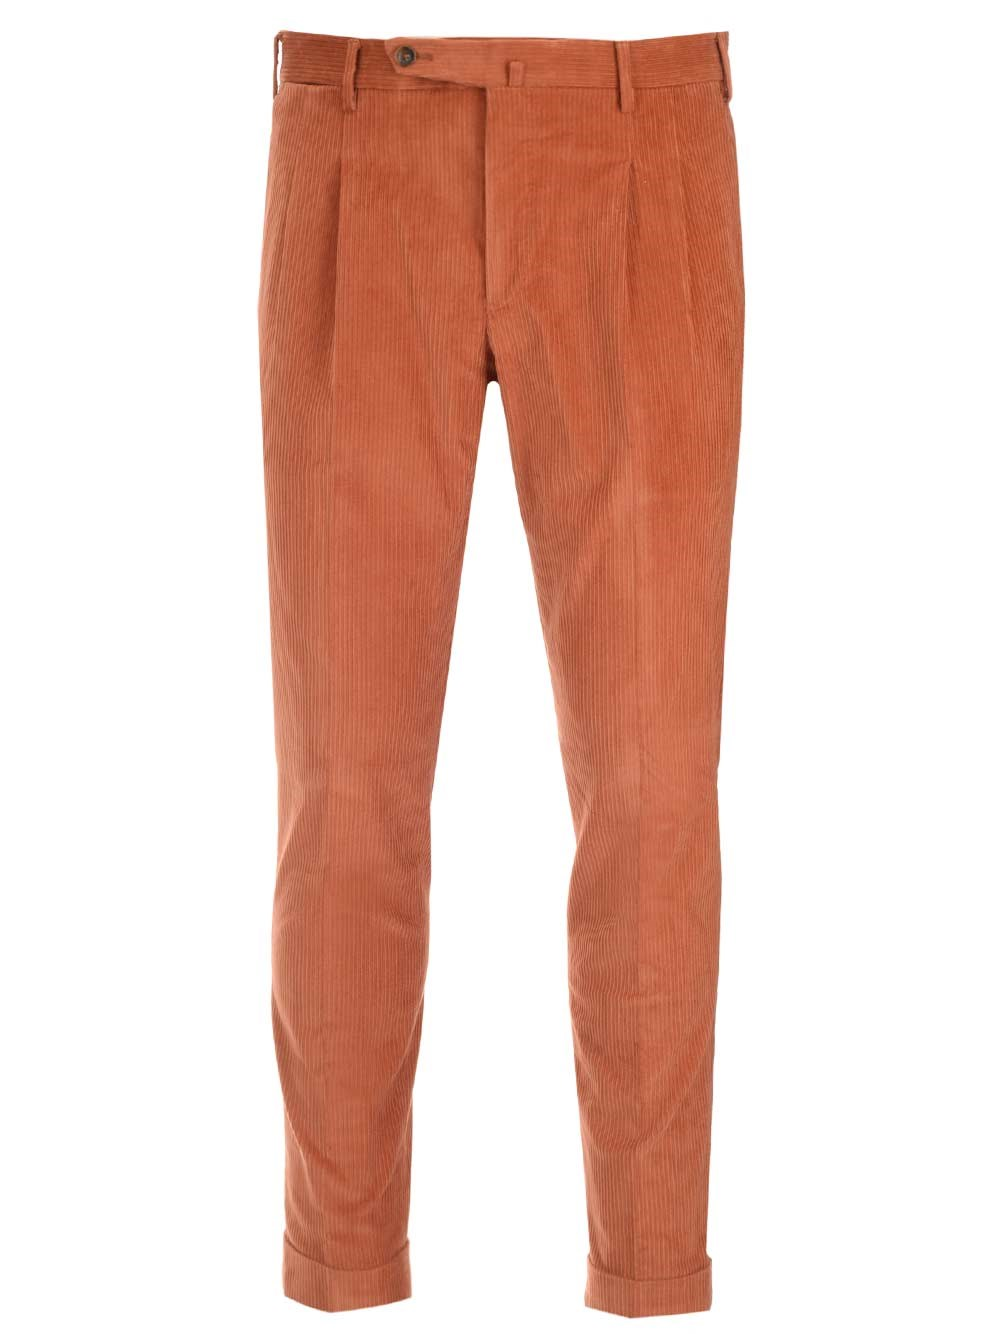 PT TORINO Pleated Trousers